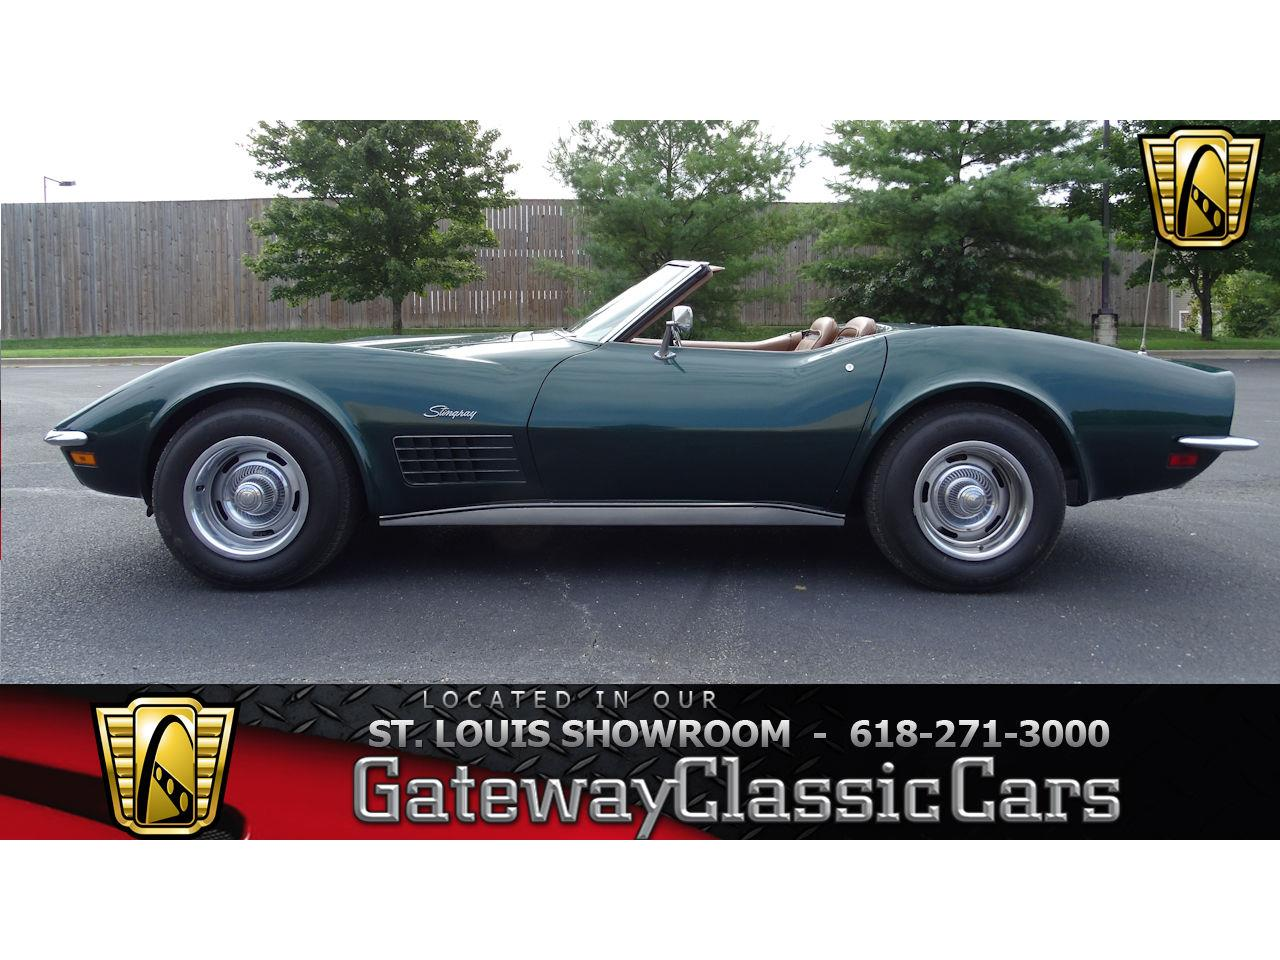 Large Picture of '71 Chevrolet Corvette located in O'Fallon Illinois - $29,595.00 Offered by Gateway Classic Cars - St. Louis - LWIG